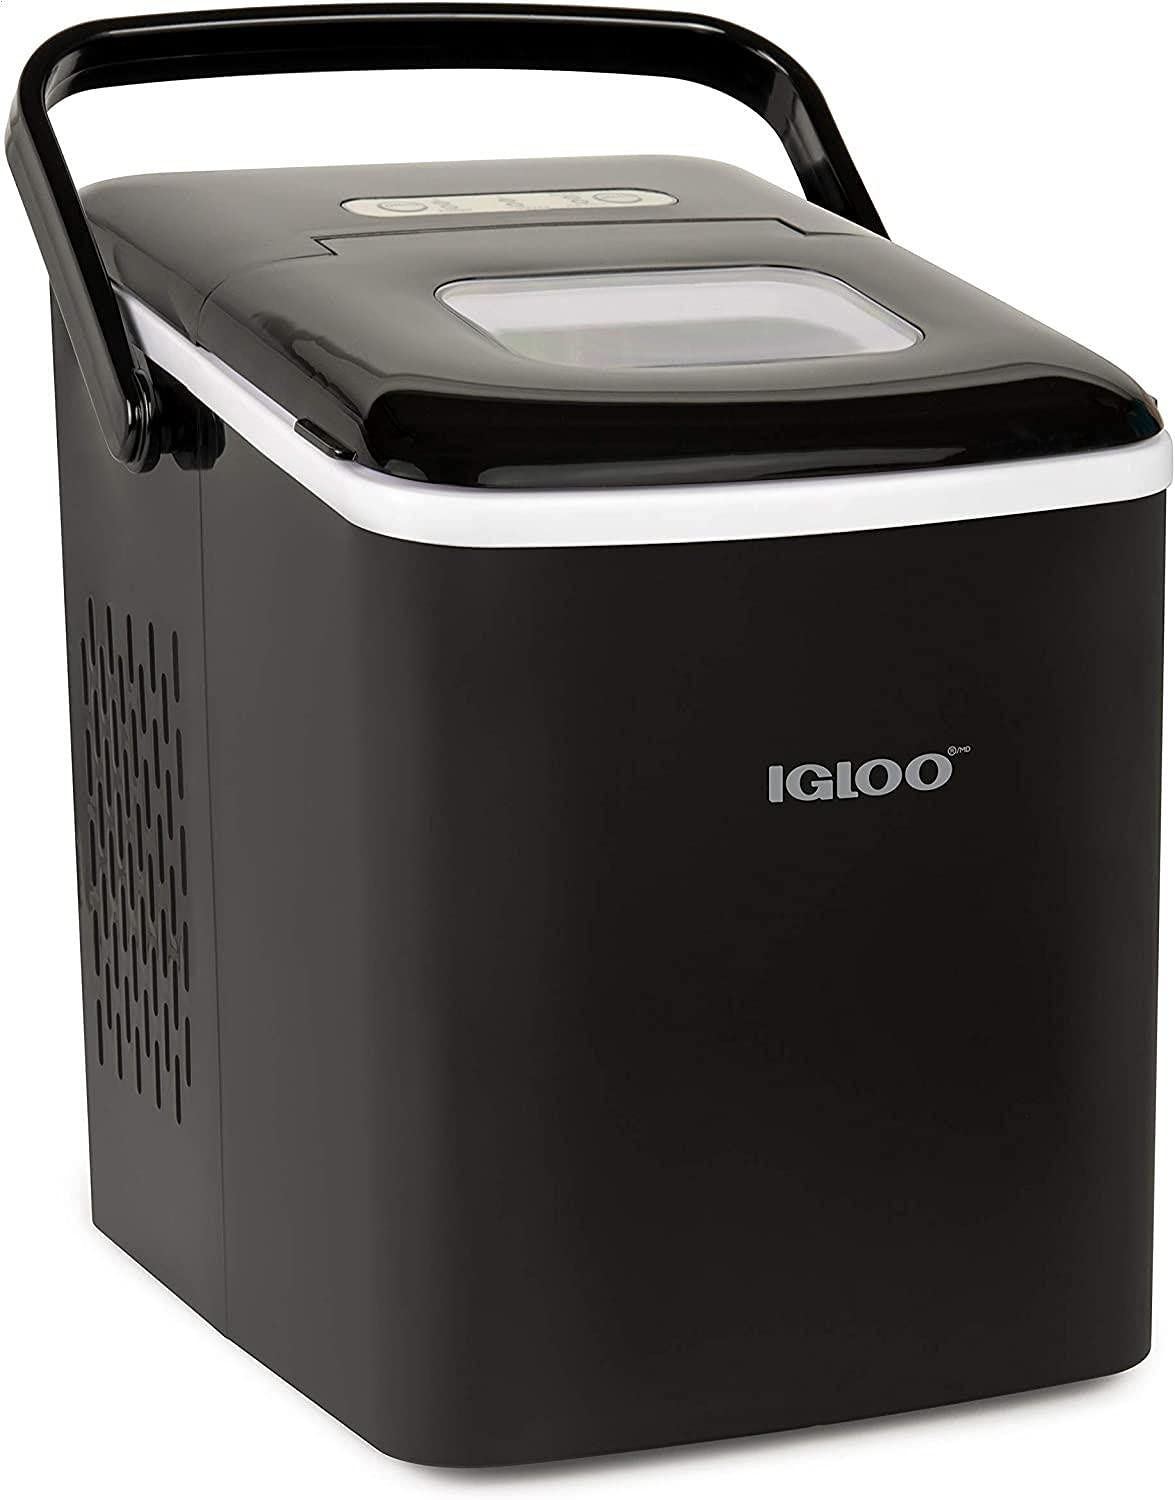 ICEB26HNBK Automatic Self-Cleaning Portable Electric Countertop Ice Maker Machine With Handle, 26 Pounds in 24 Hours, 9 Ice Cubes Ready in 7 minutes, With Ice Scoop and Basket,Black Black (New)